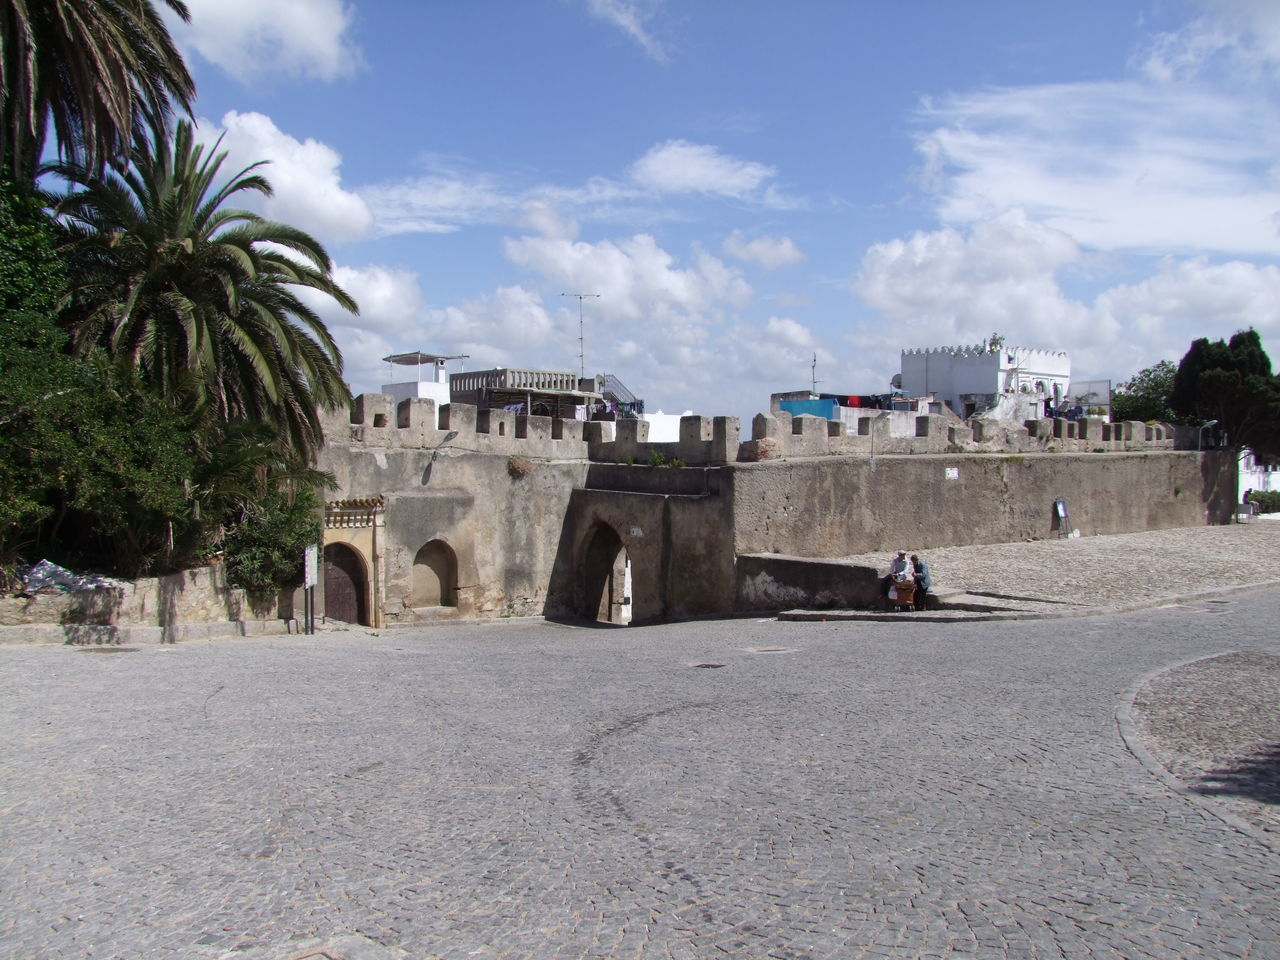 Kasbah Walls Blue Sky White Clouds Building Exterior Built Structure Castle Walls City Composition Full Frame Historical Monument Historical Place History Incidental People Kasbah Moroccan Architecture Moroccan Style Morocco Old City Open Space Outdoor Photography Palm Trees Sunlight And Shadow Tangier Tourist Attraction  Tourist Destination Tree Walls